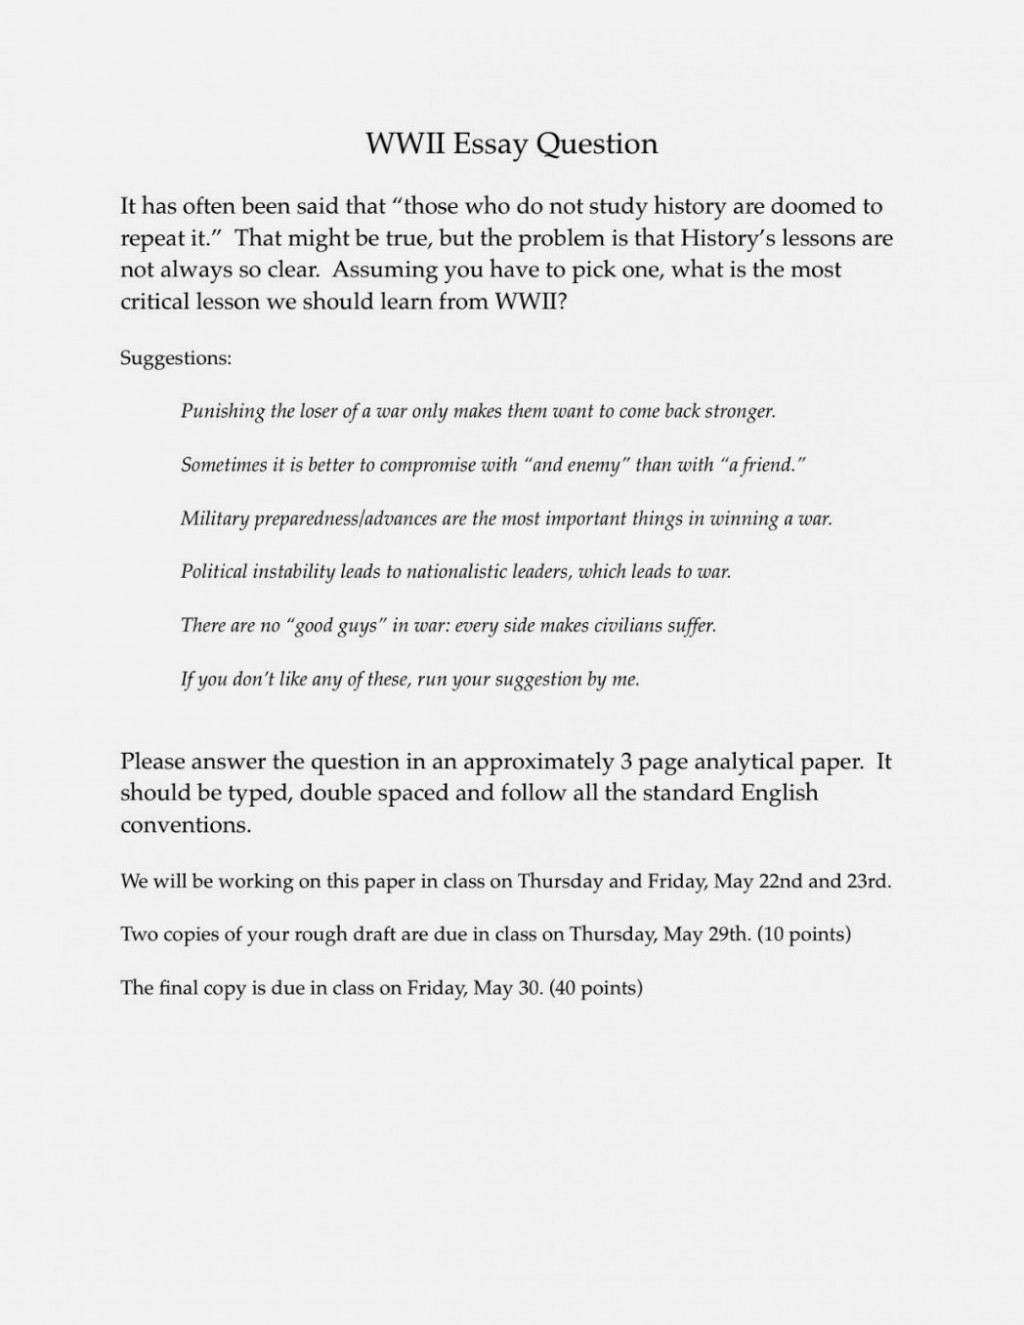 002 Essay Example History Of Basketball Essaycover Letter Template For Tsi Writing Scores Wwiies Prompts Surprising 24 Essays24 Free Account Join Essays24.com Large